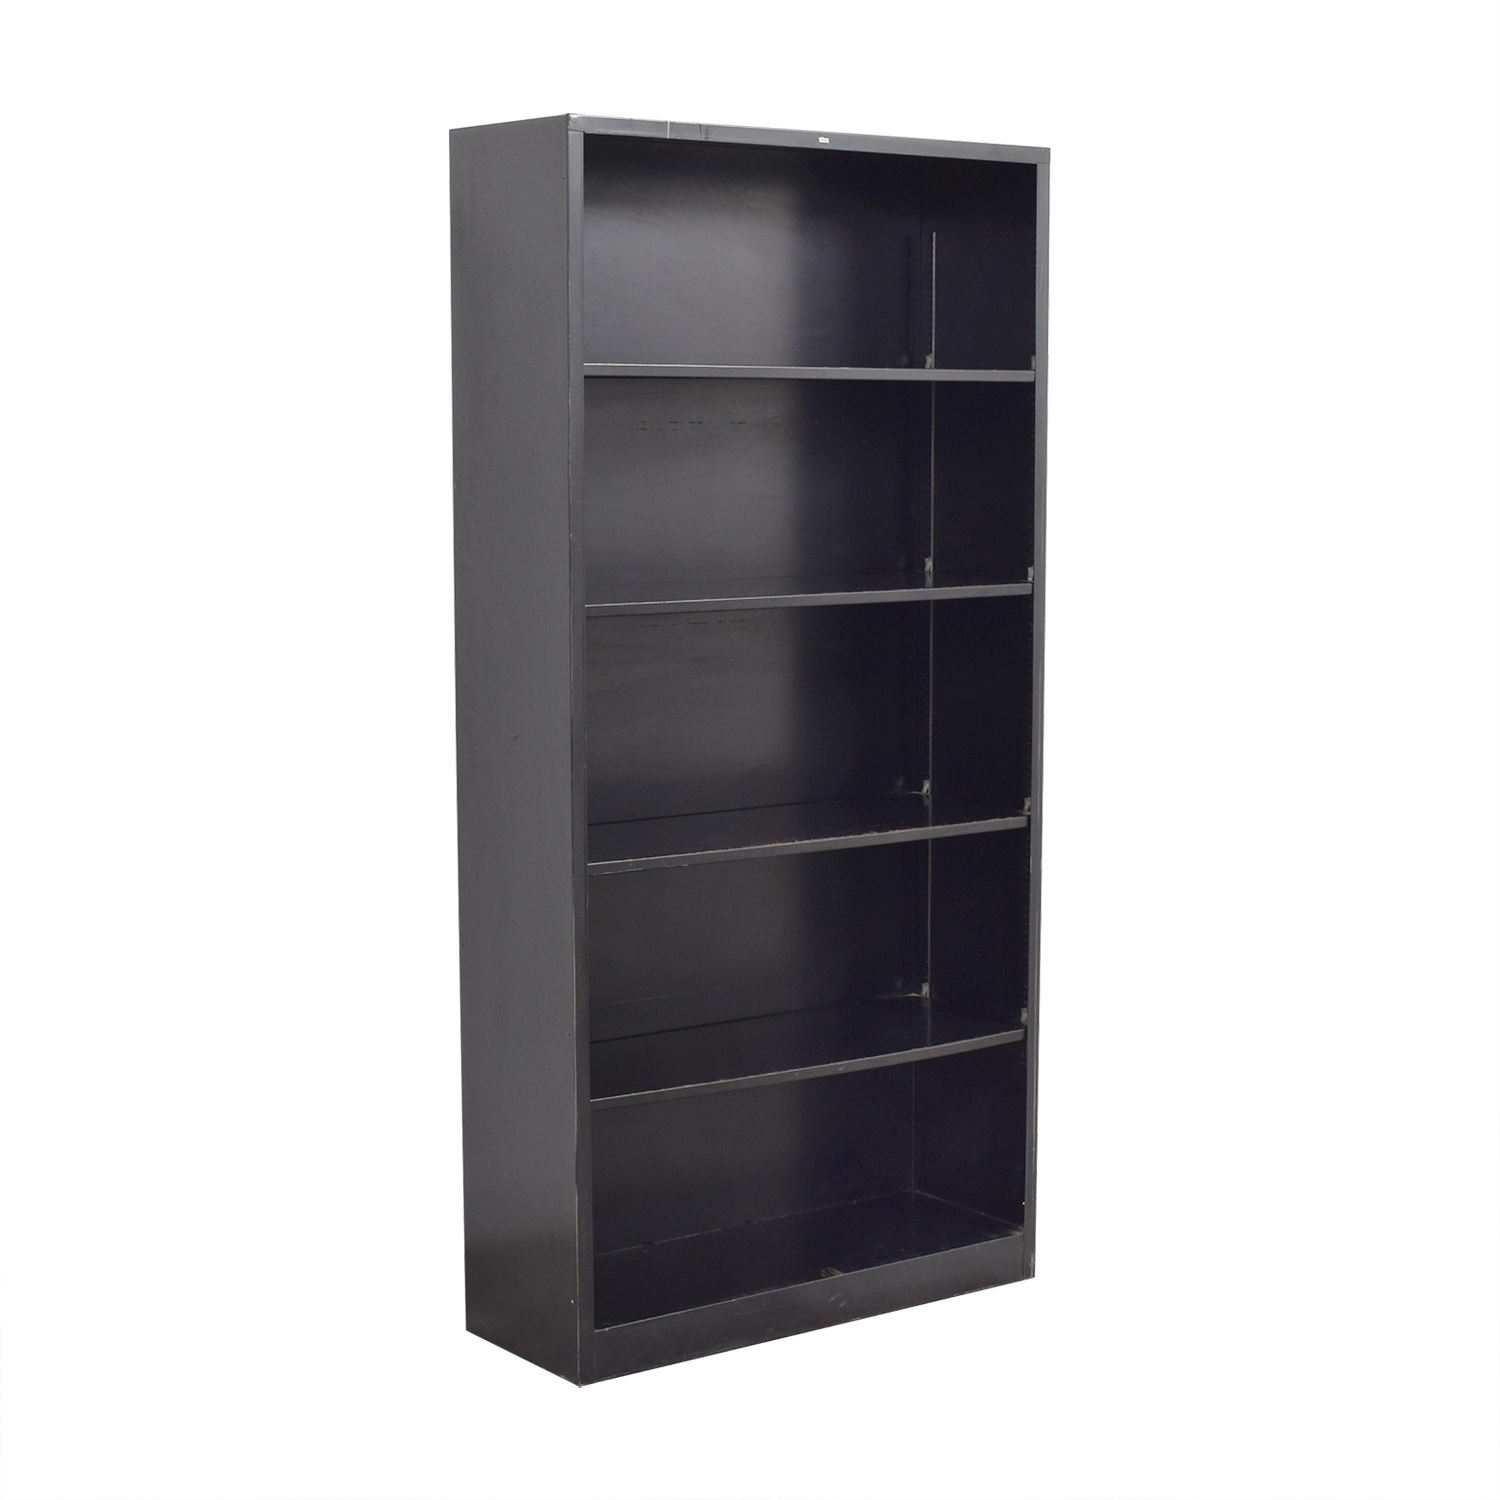 Hon HON Brigade 5-Shelf Bookcase black